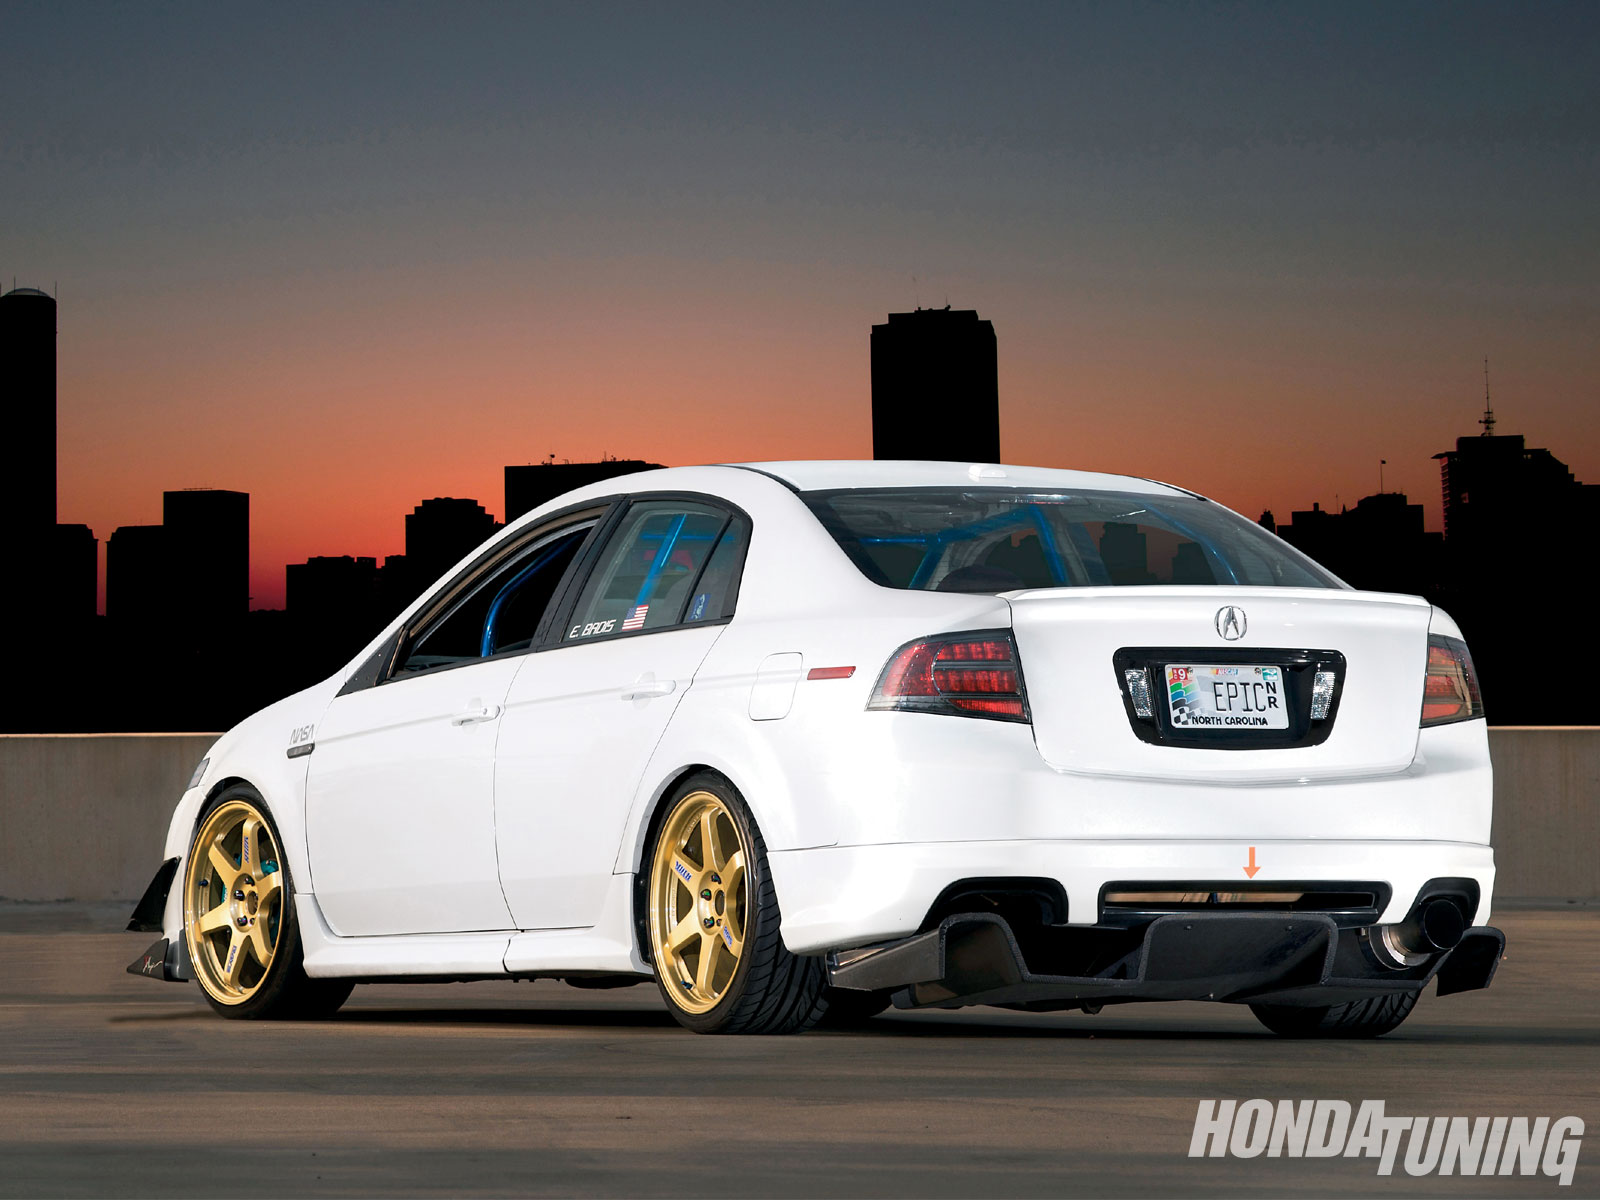 2005 Acura Tl Daring To Be Different Honda Tuning Magazine